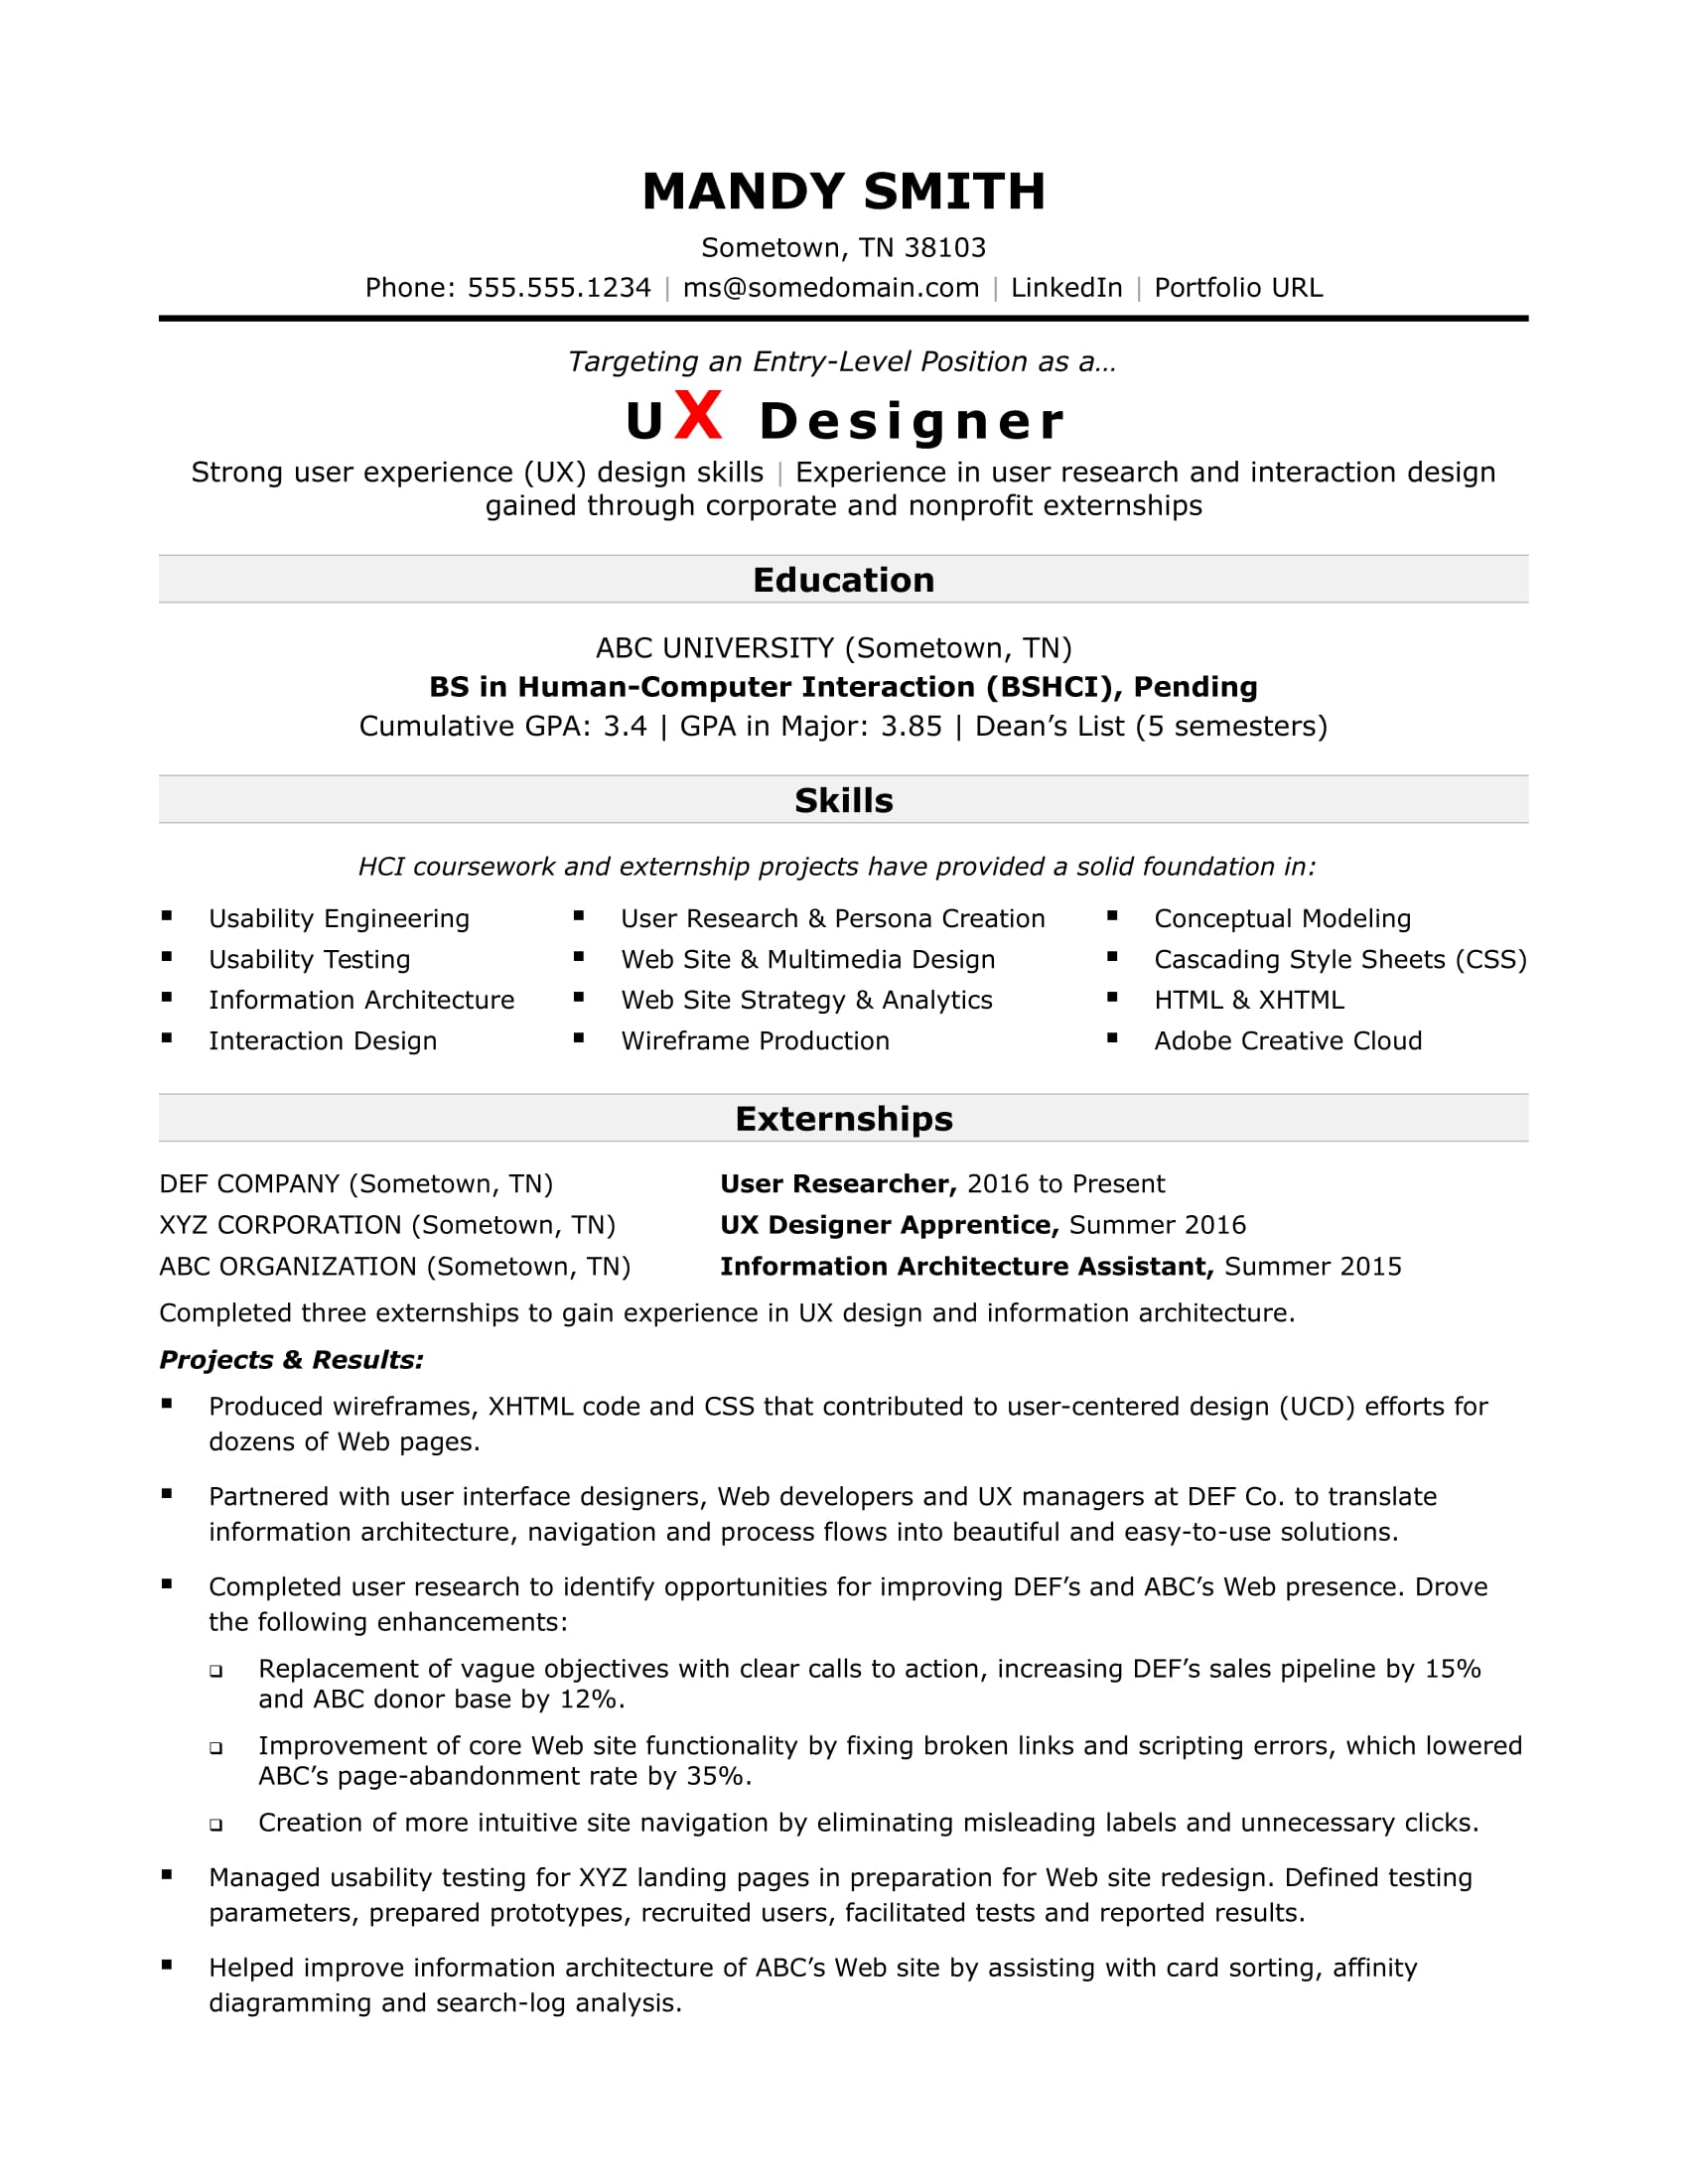 Sample Resume For An Entry Level Ux Designer Monster